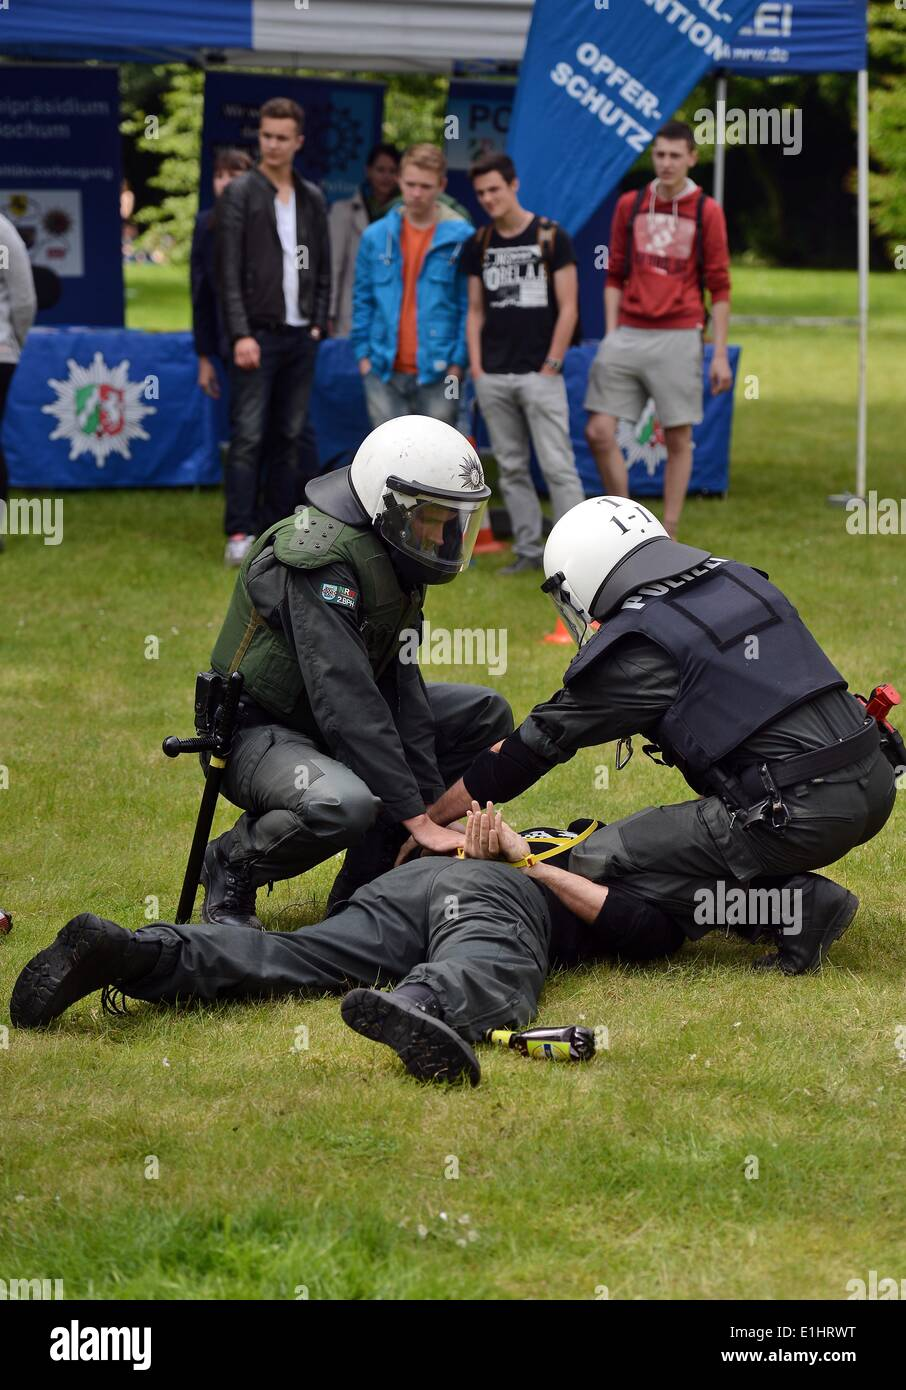 Bochum, Germany. 2nd June, 2014. Visitors look an as two police officer stage an arrest during a recruitment campaign of North Rhine-Westphalia's police force in Bochum, Germany, 2 June 2014. North Rhine-Westphalia's police force is currently recruiting 1500 new officers. Photo: Henning Kaiser/dpa/Alamy Live News - Stock Image